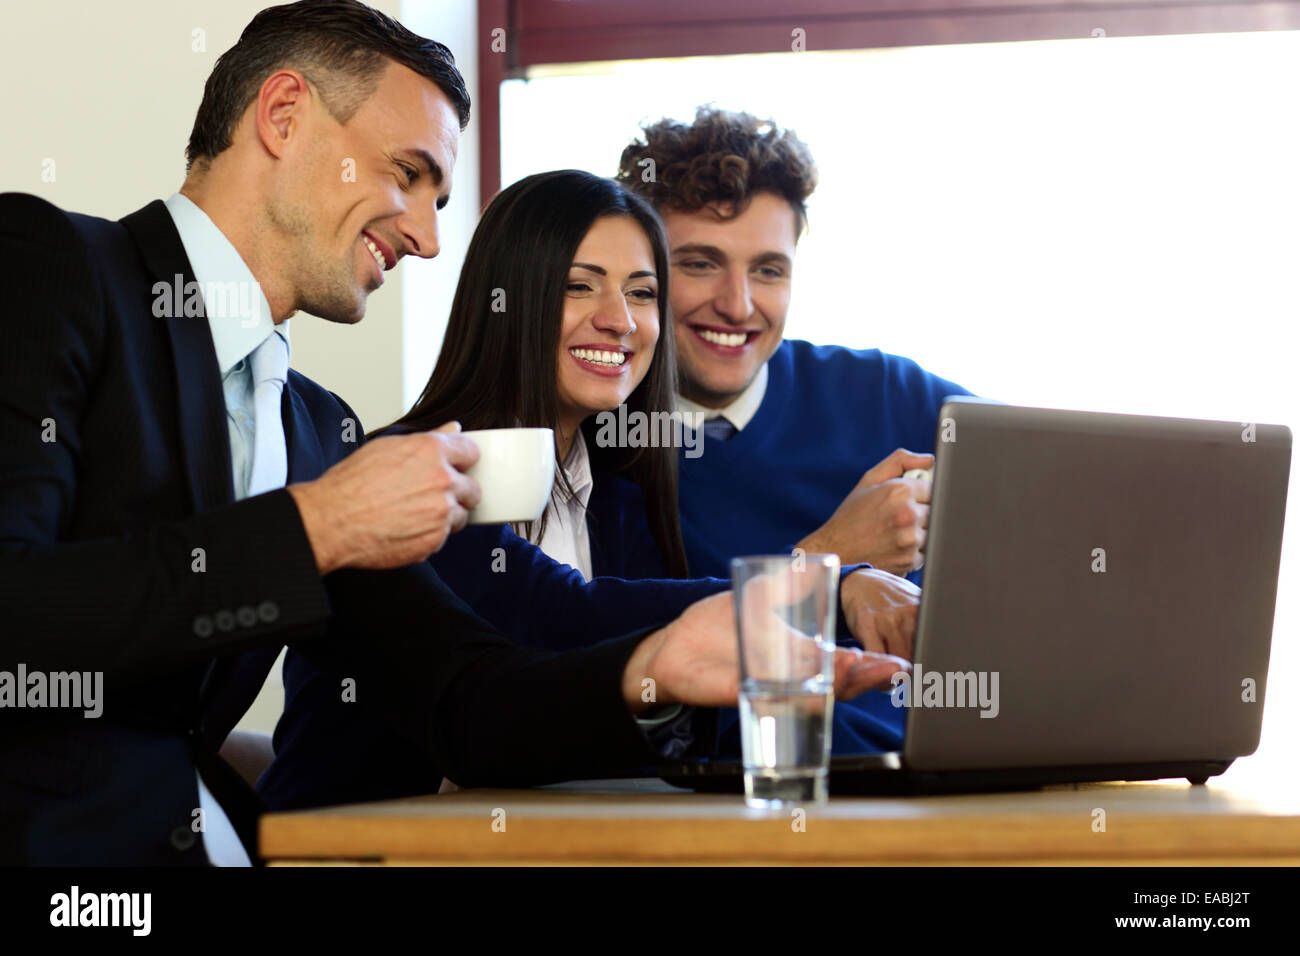 Business people using laptop together in office Photo Stock